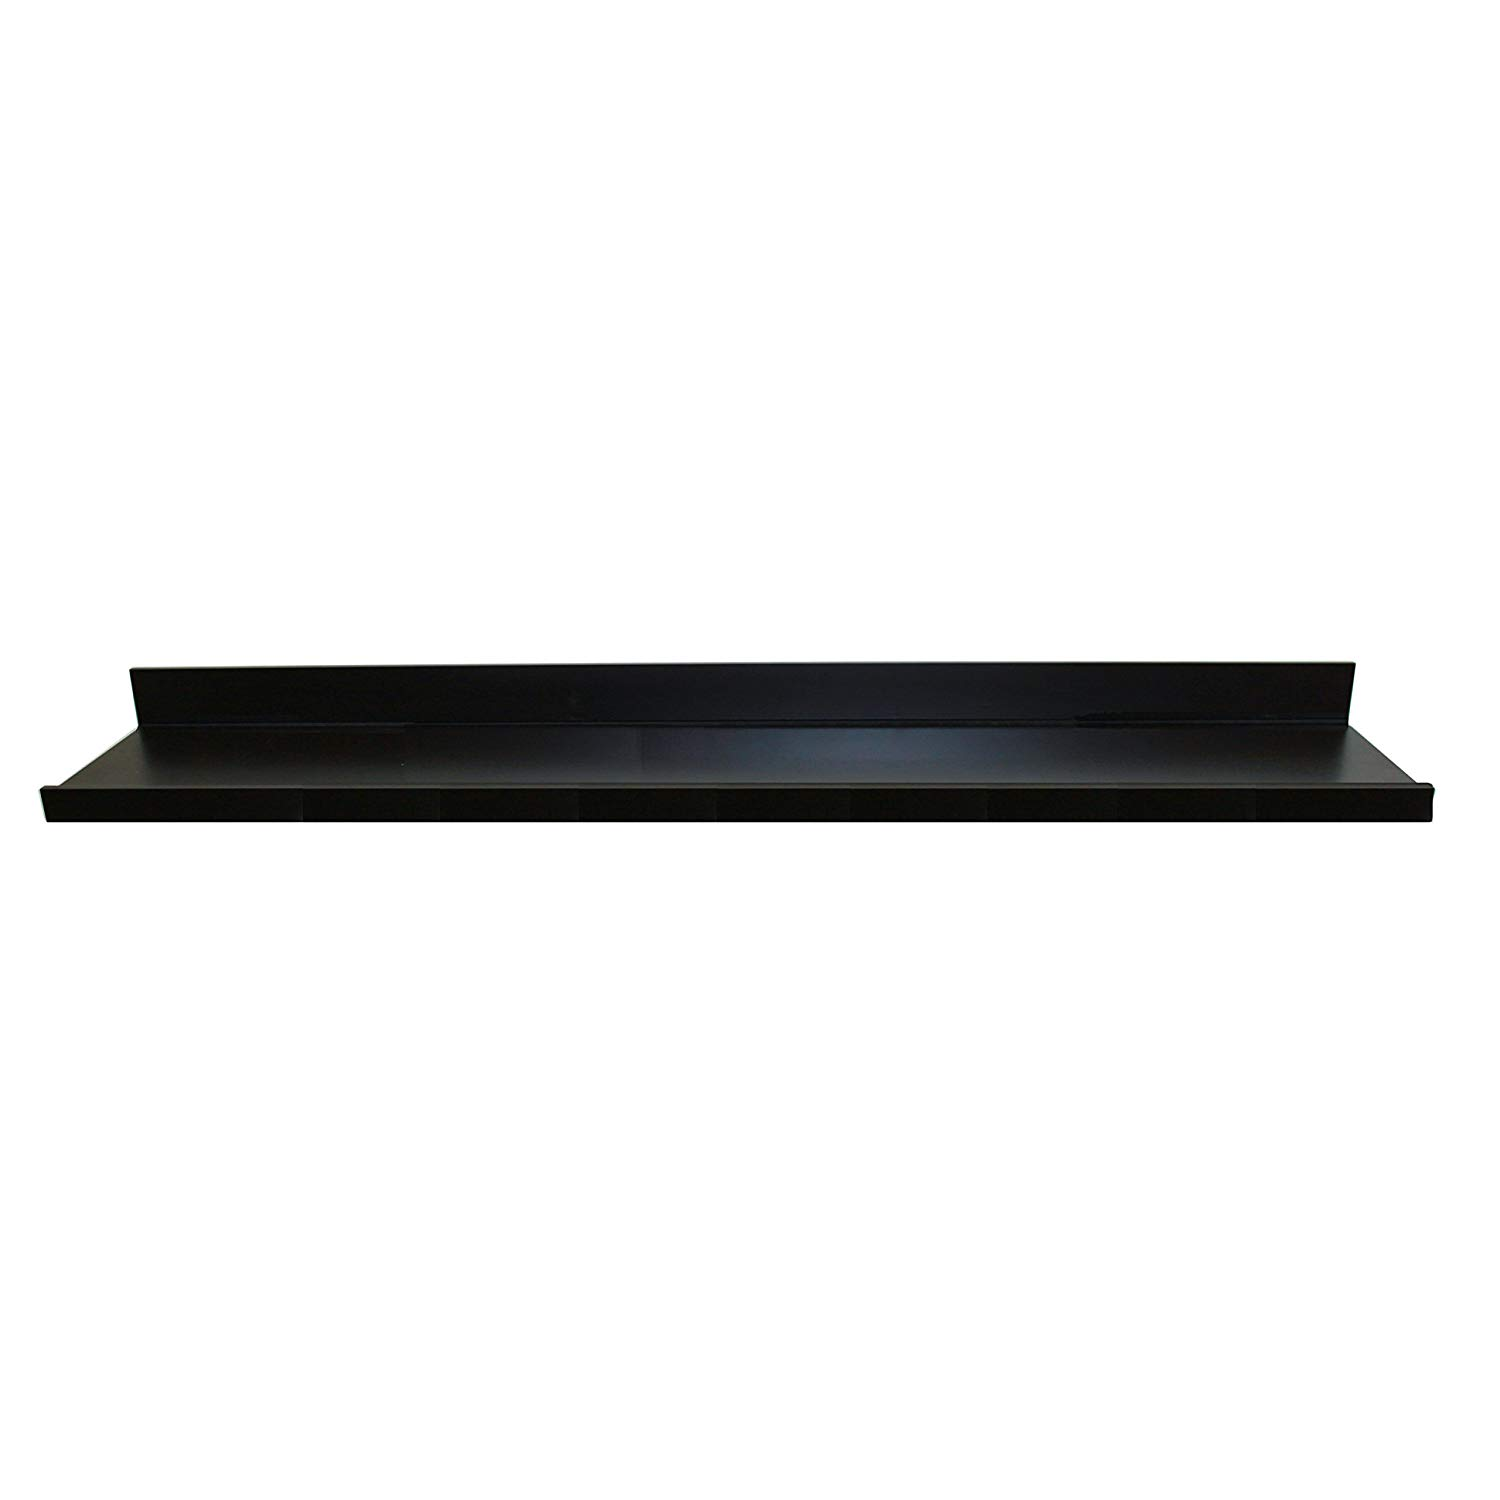 inplace shelving floating wall shelf with shelves inches white ture ledge black inch wide deep high home improvement chunky wood mantel custom kitchen computer table corner ideas